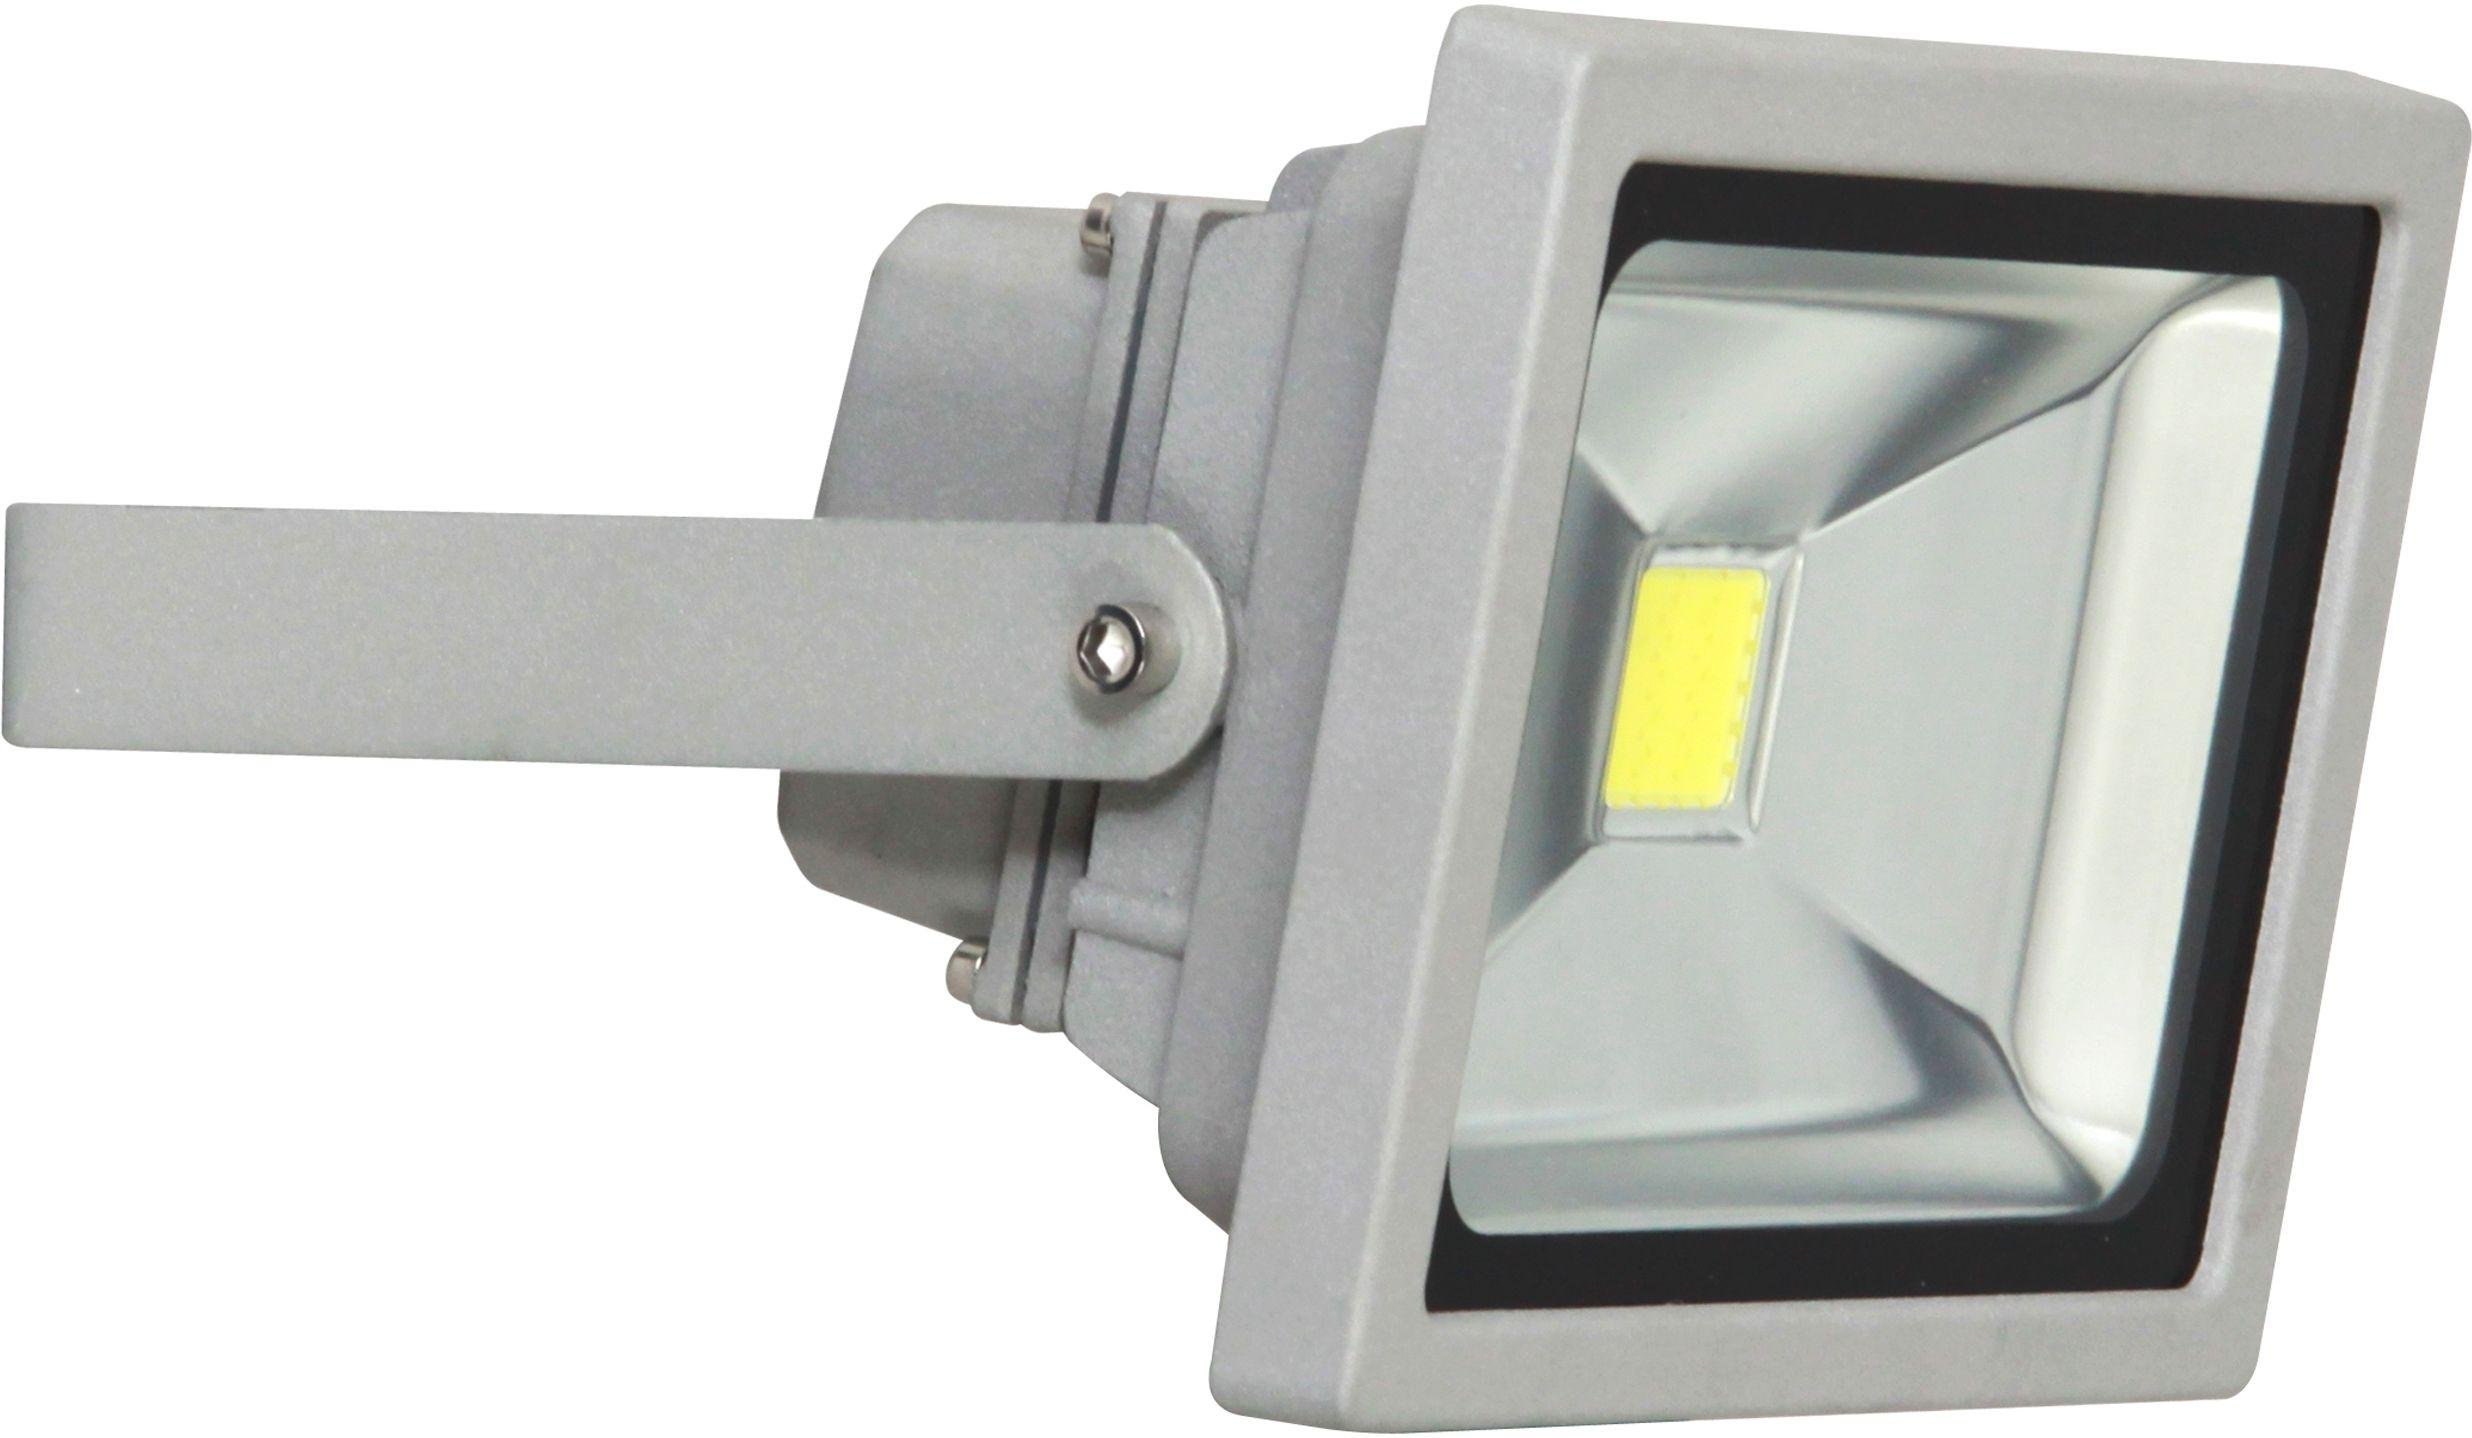 20 Watt Led Sale On Xqlite 20 Watt Smd Led Wall Flood Light Xqlite